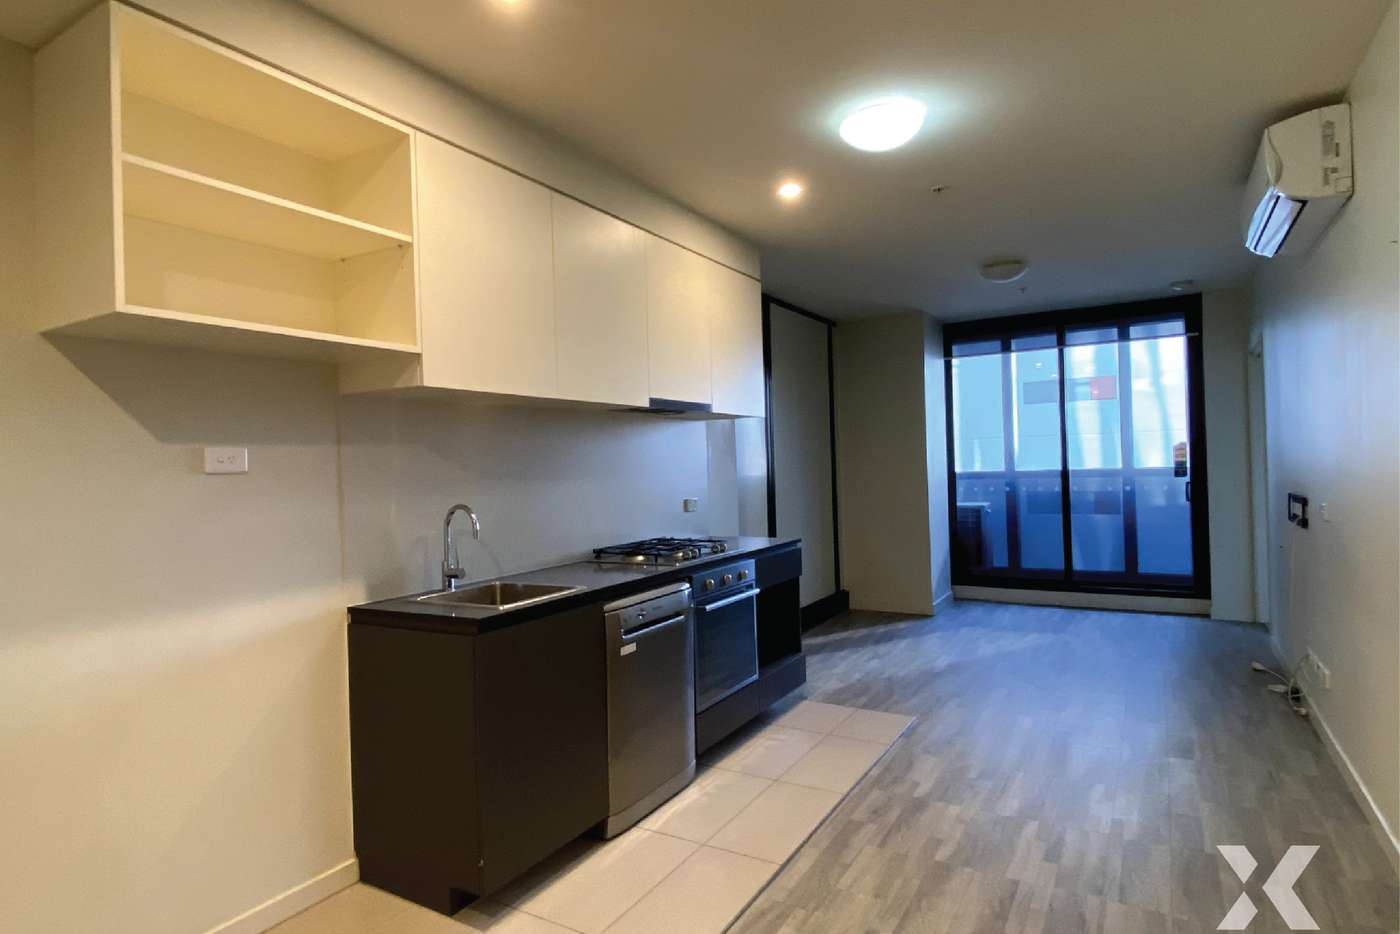 Main view of Homely apartment listing, 3105/568 Collins Street, Melbourne VIC 3000